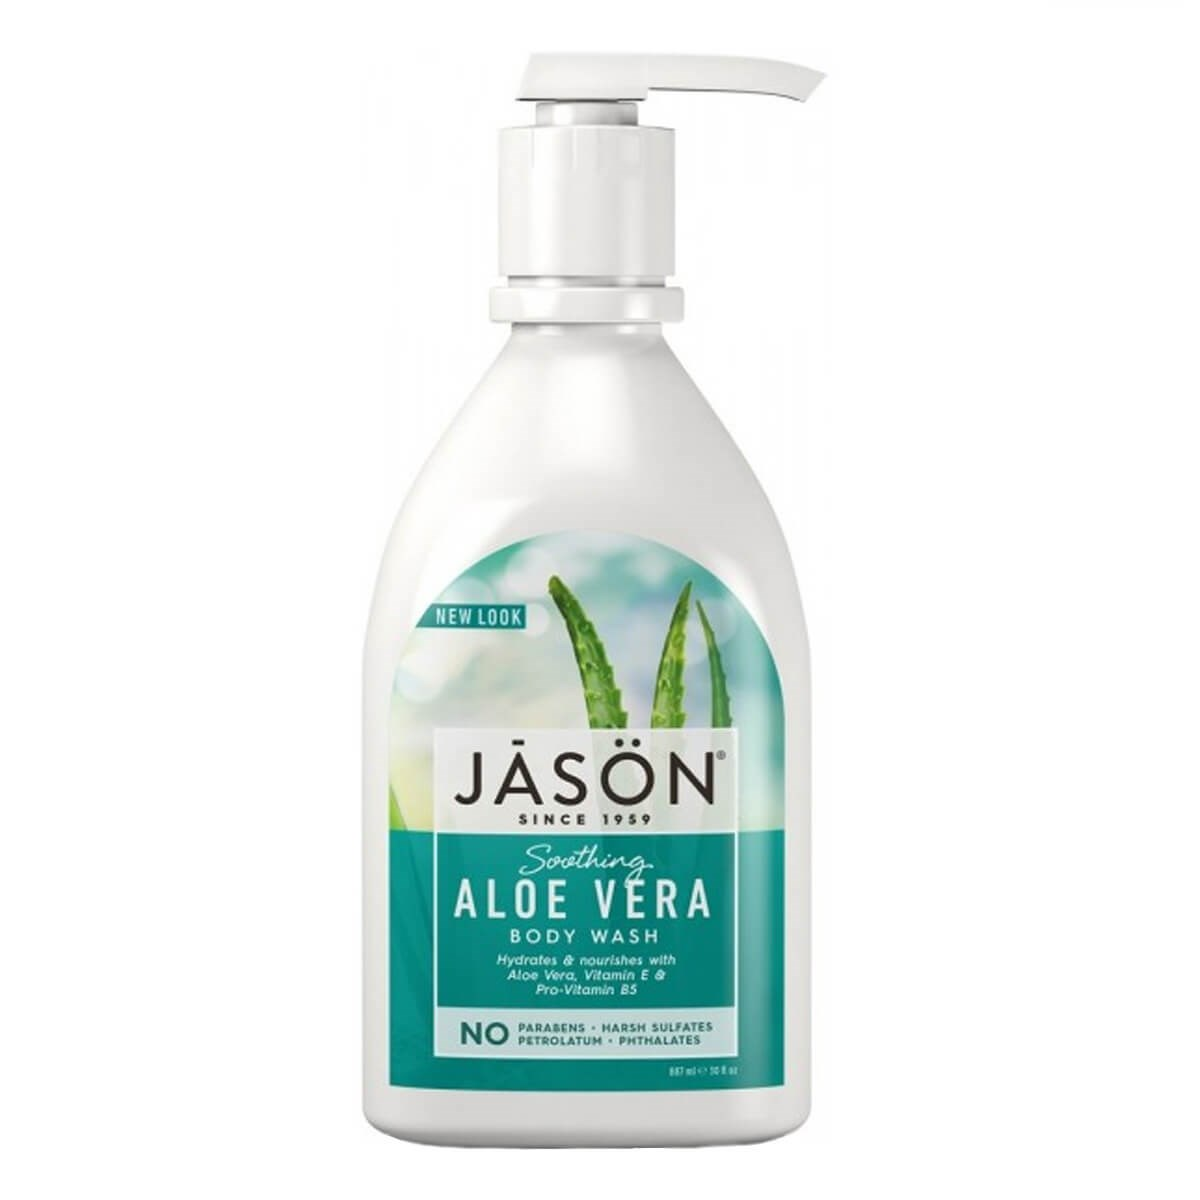 Jason Aloe Vera Satin Body Wash Pump - Soothing